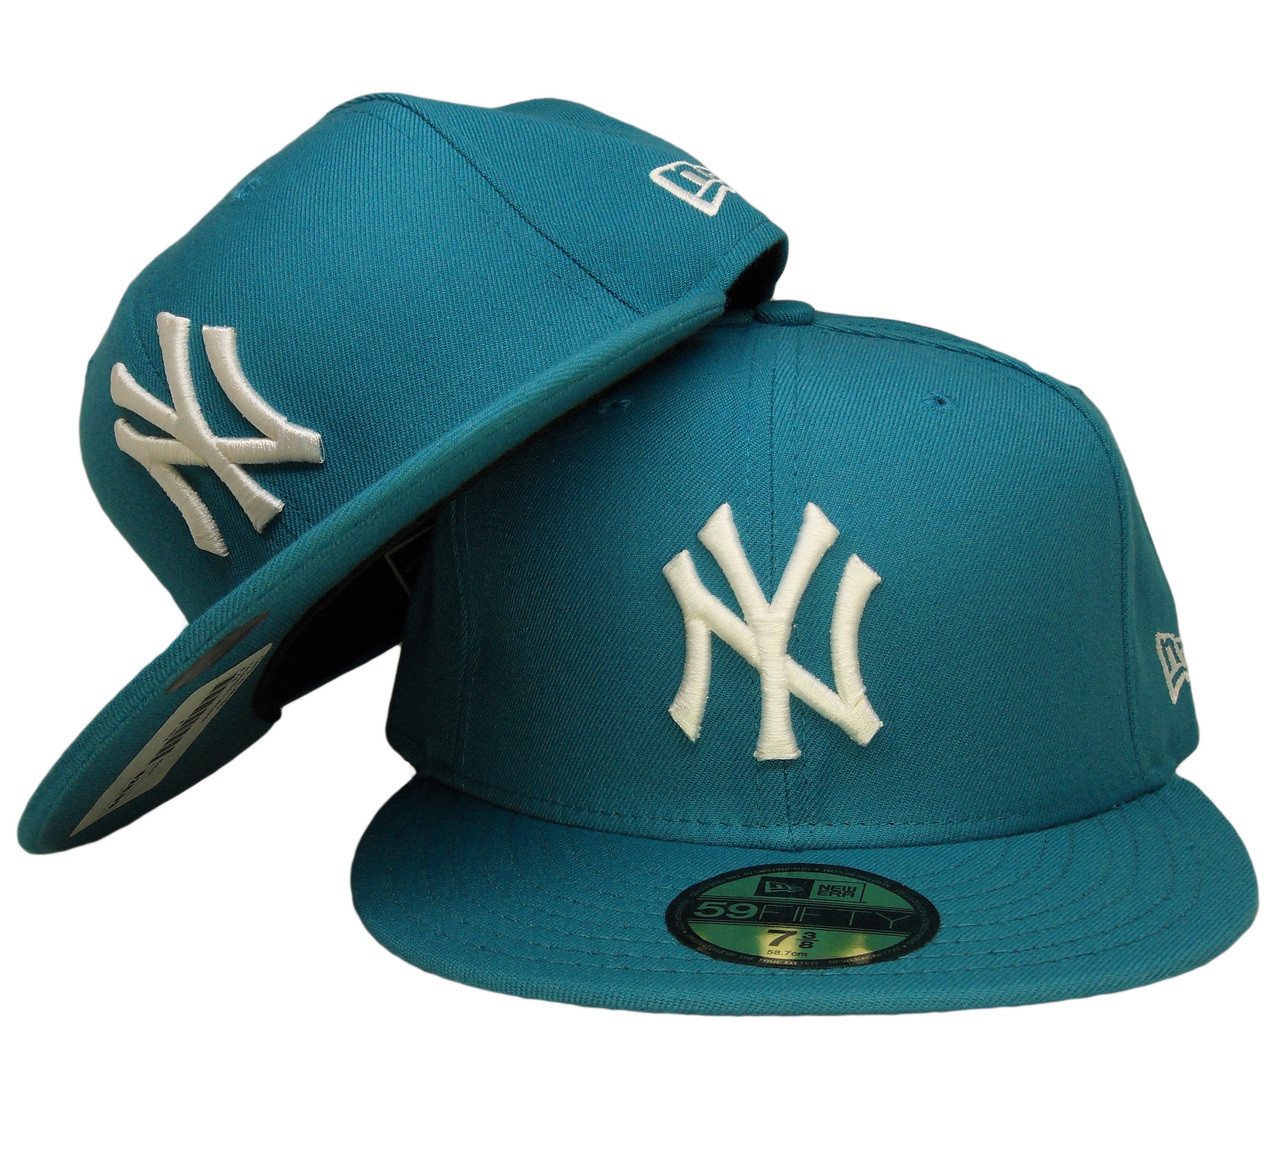 2e706509f11 16d1a 94e92  ebay new york yankees new era 59fifty basic fitted hat  turquoise white 69e0d 8c31a